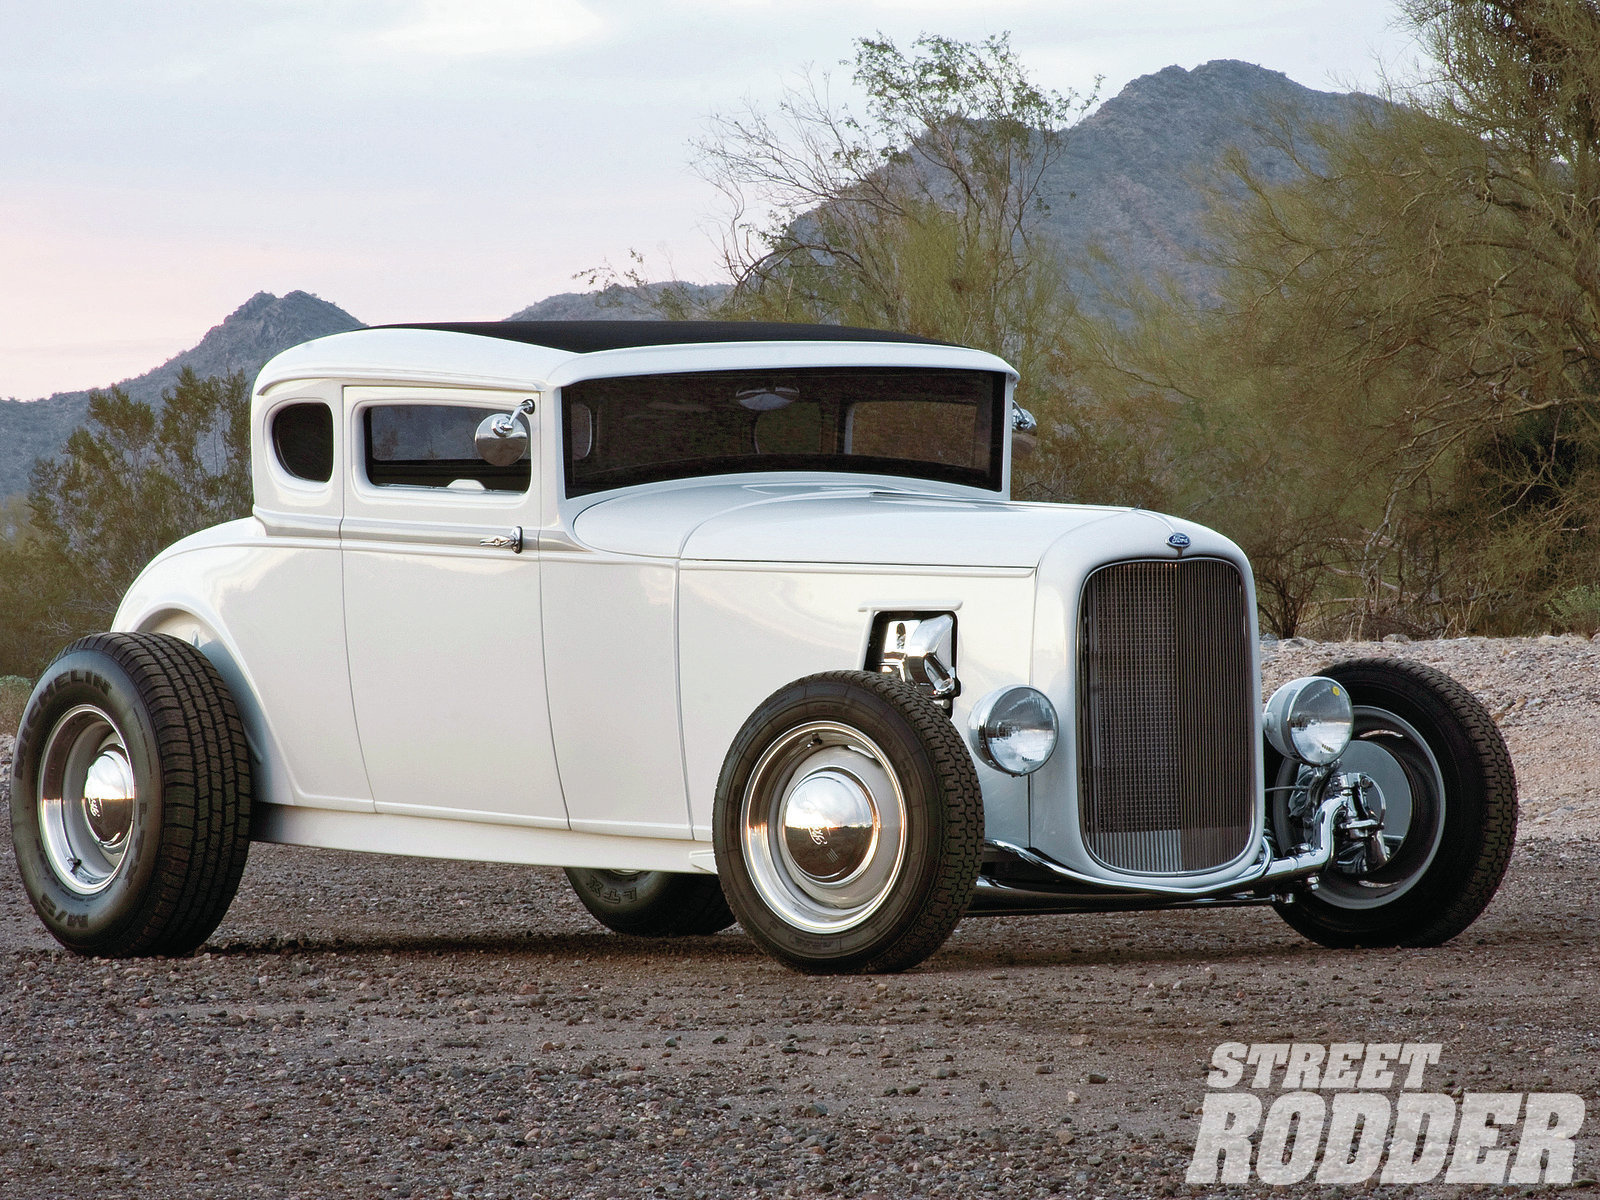 HQ 1930 Ford Coupe Wallpapers | File 579.28Kb